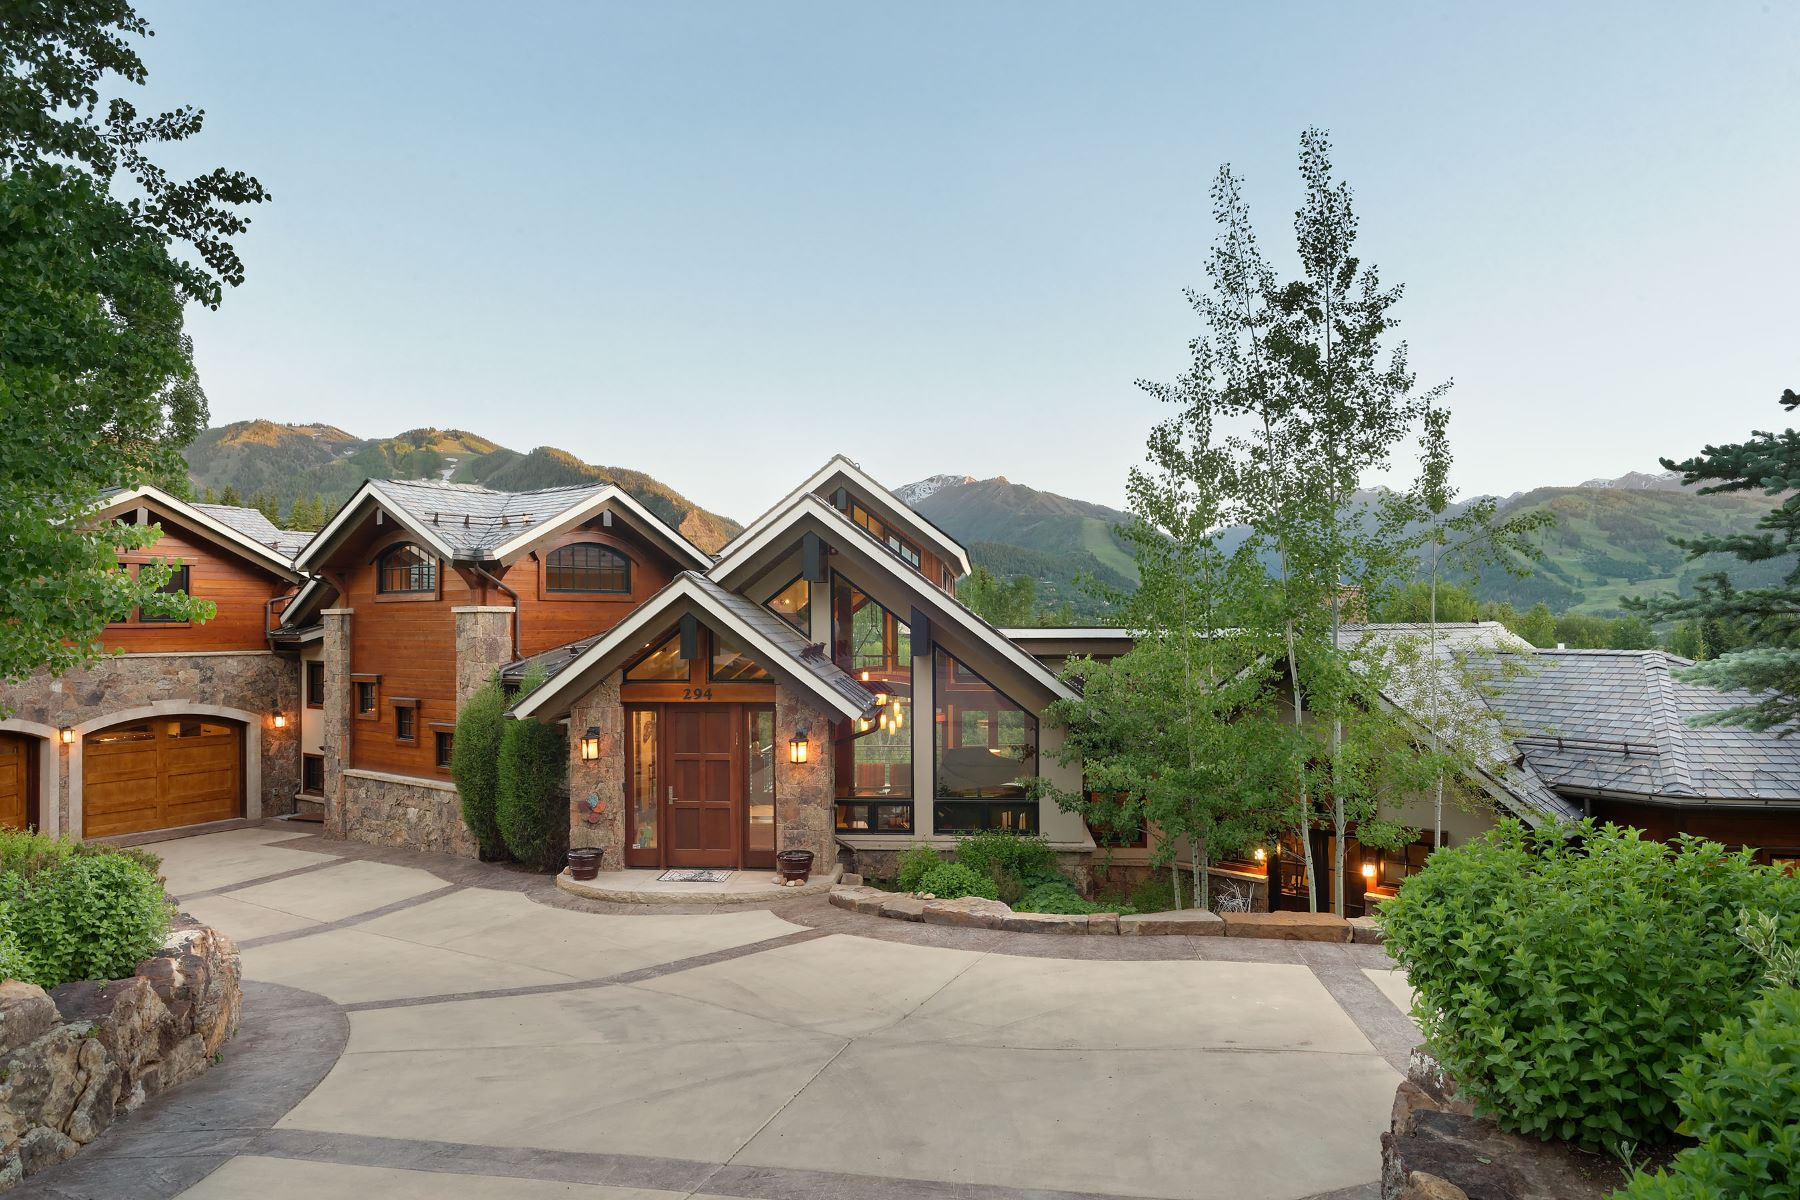 Single Family Home for Sale at Mountain Modern Masterpiece 294/296 Draw Drive Aspen, Colorado, 81611 United States